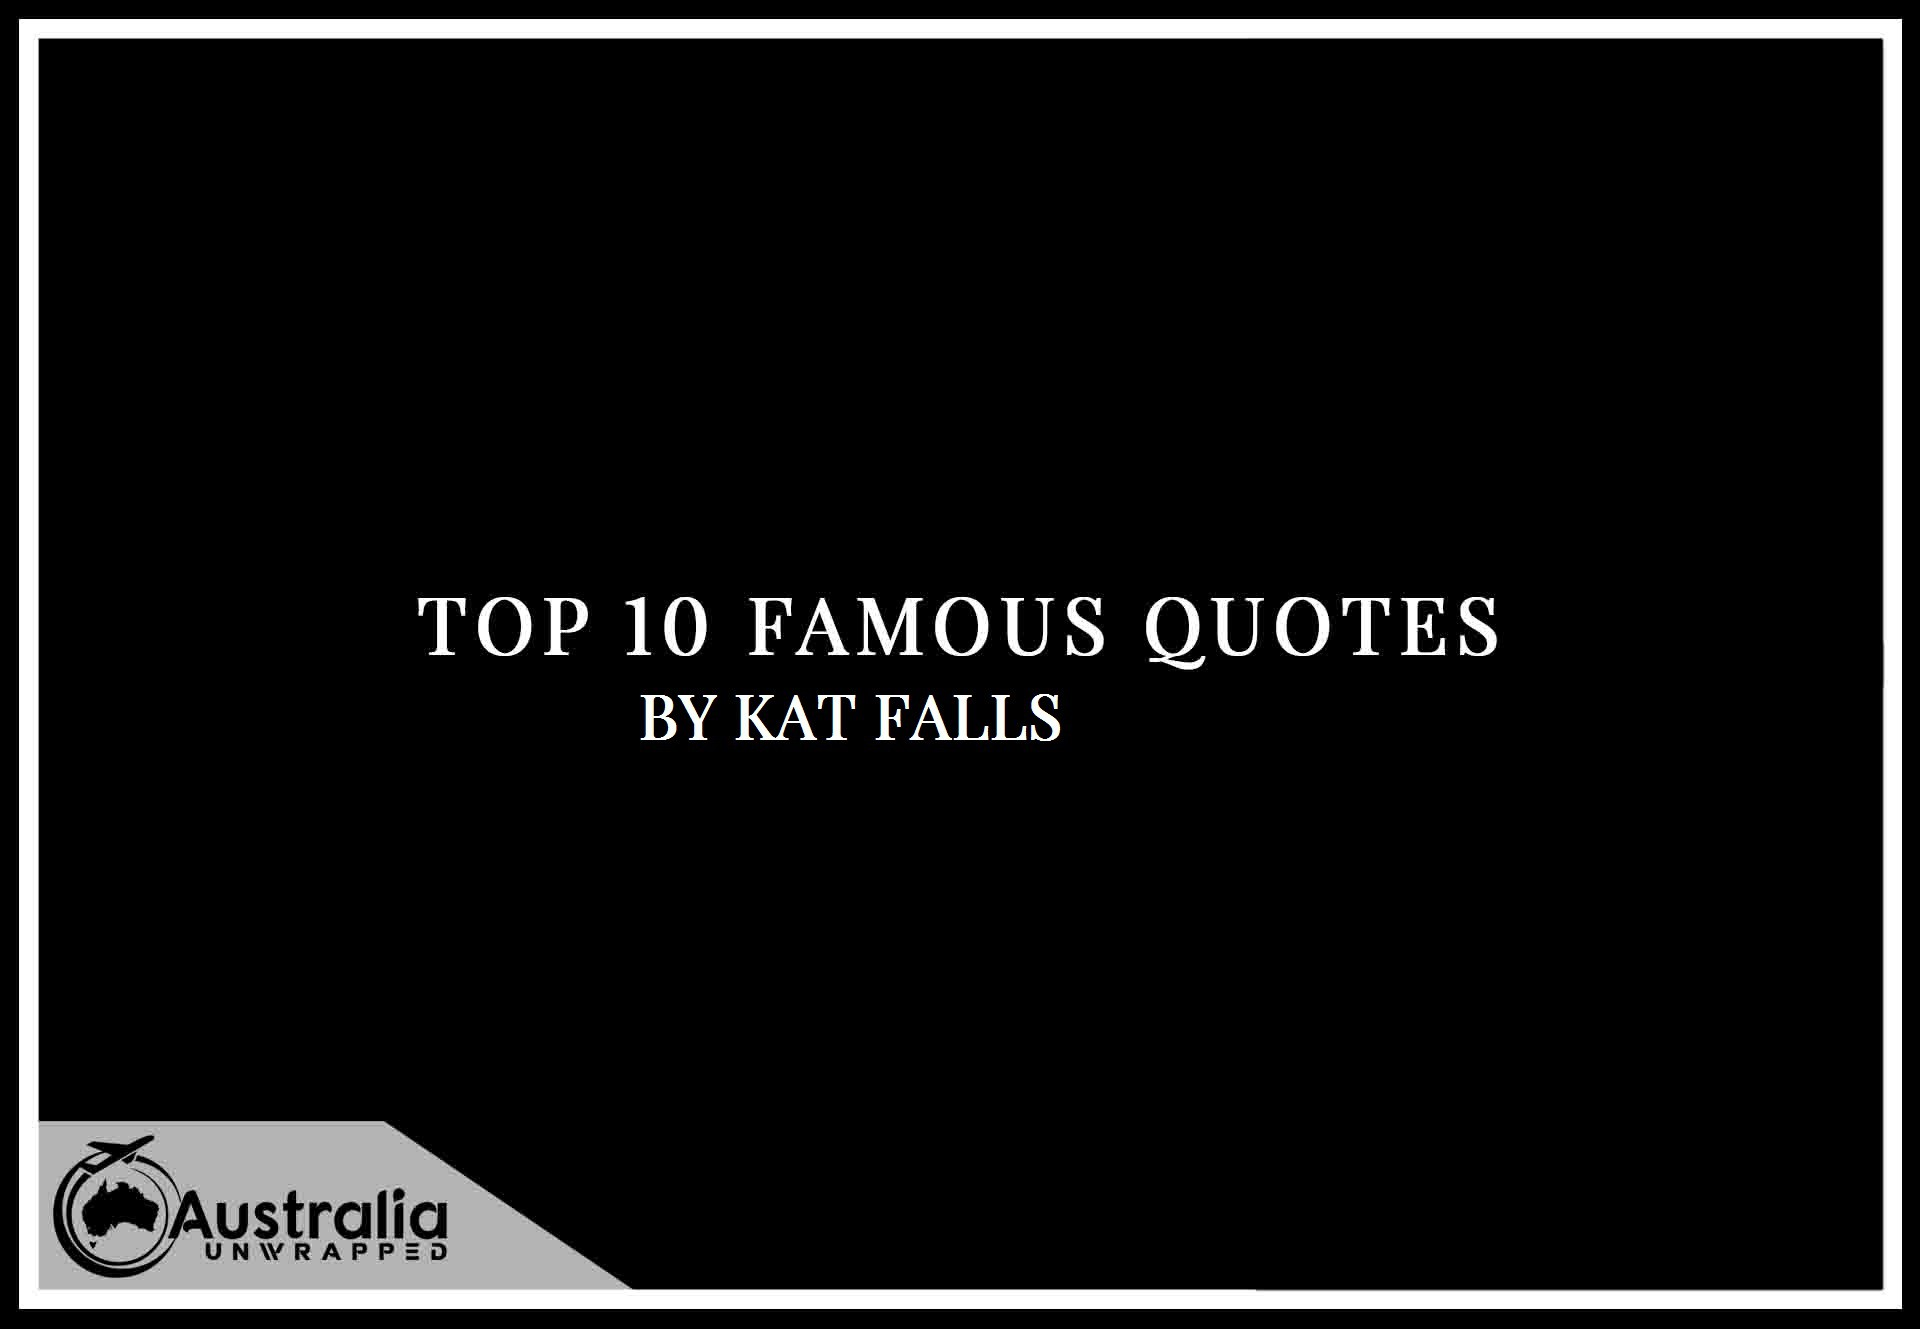 Kat Falls's Top 10 Popular and Famous Quotes